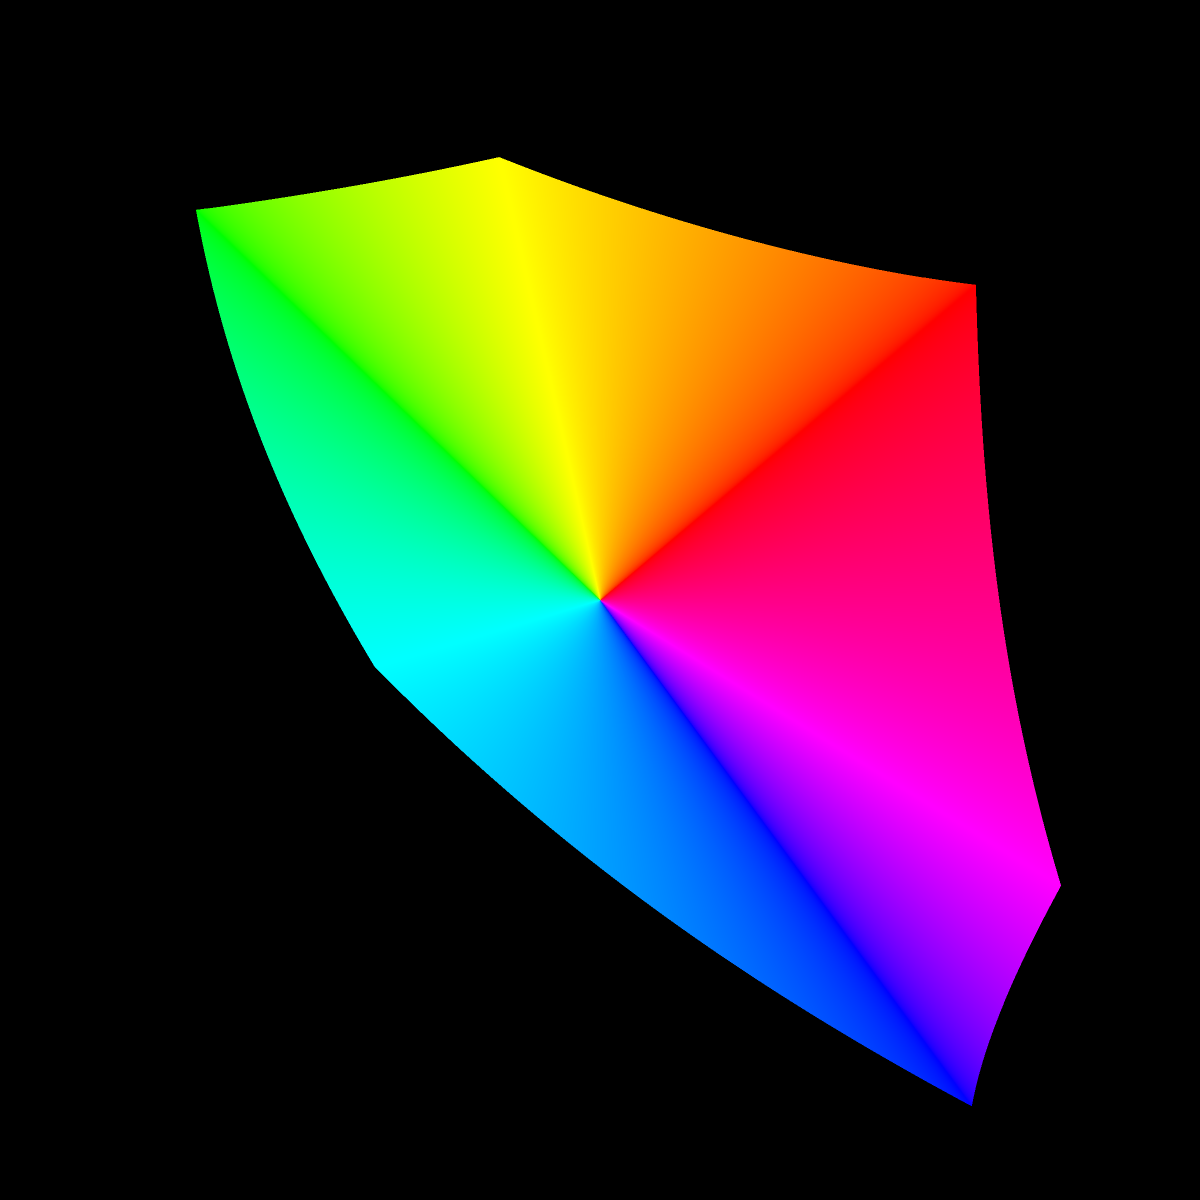 saturated RGB colors projected to the a-b plane of the CIE Lab color space